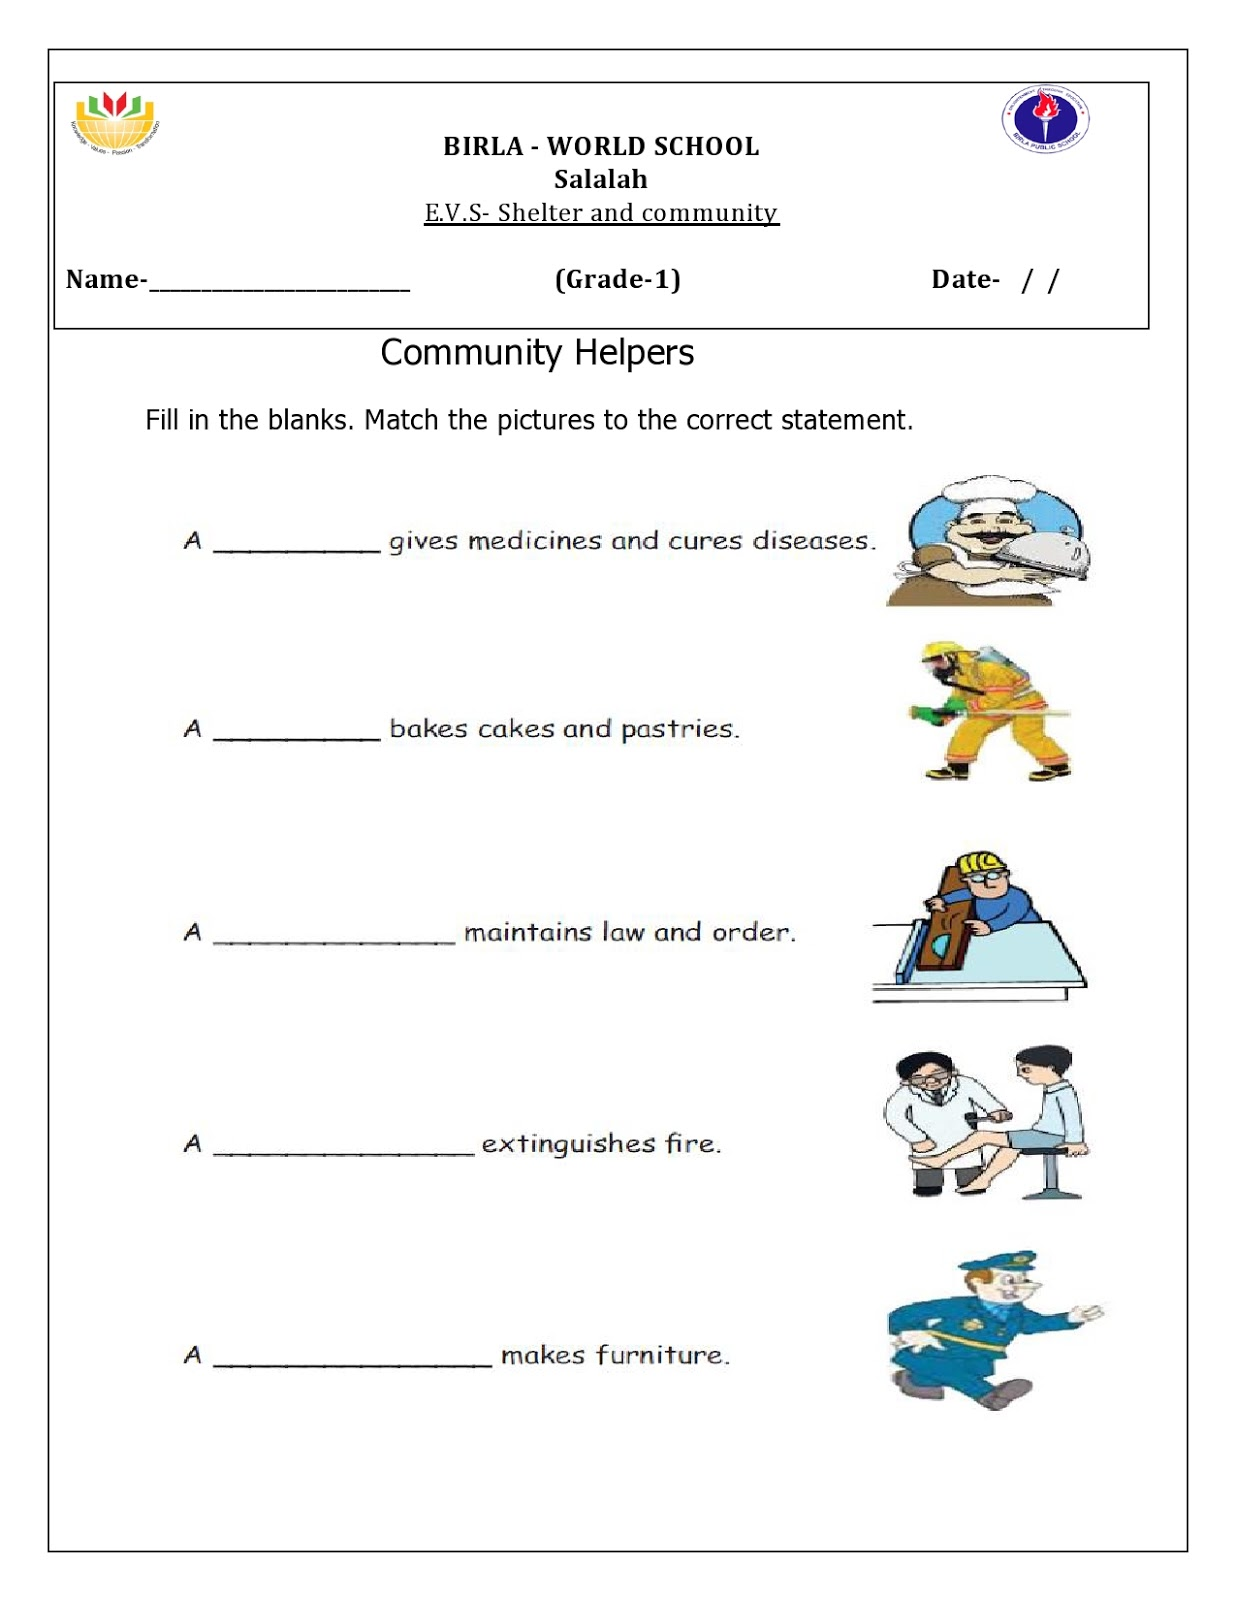 Worksheet For Class 4 English Kvs